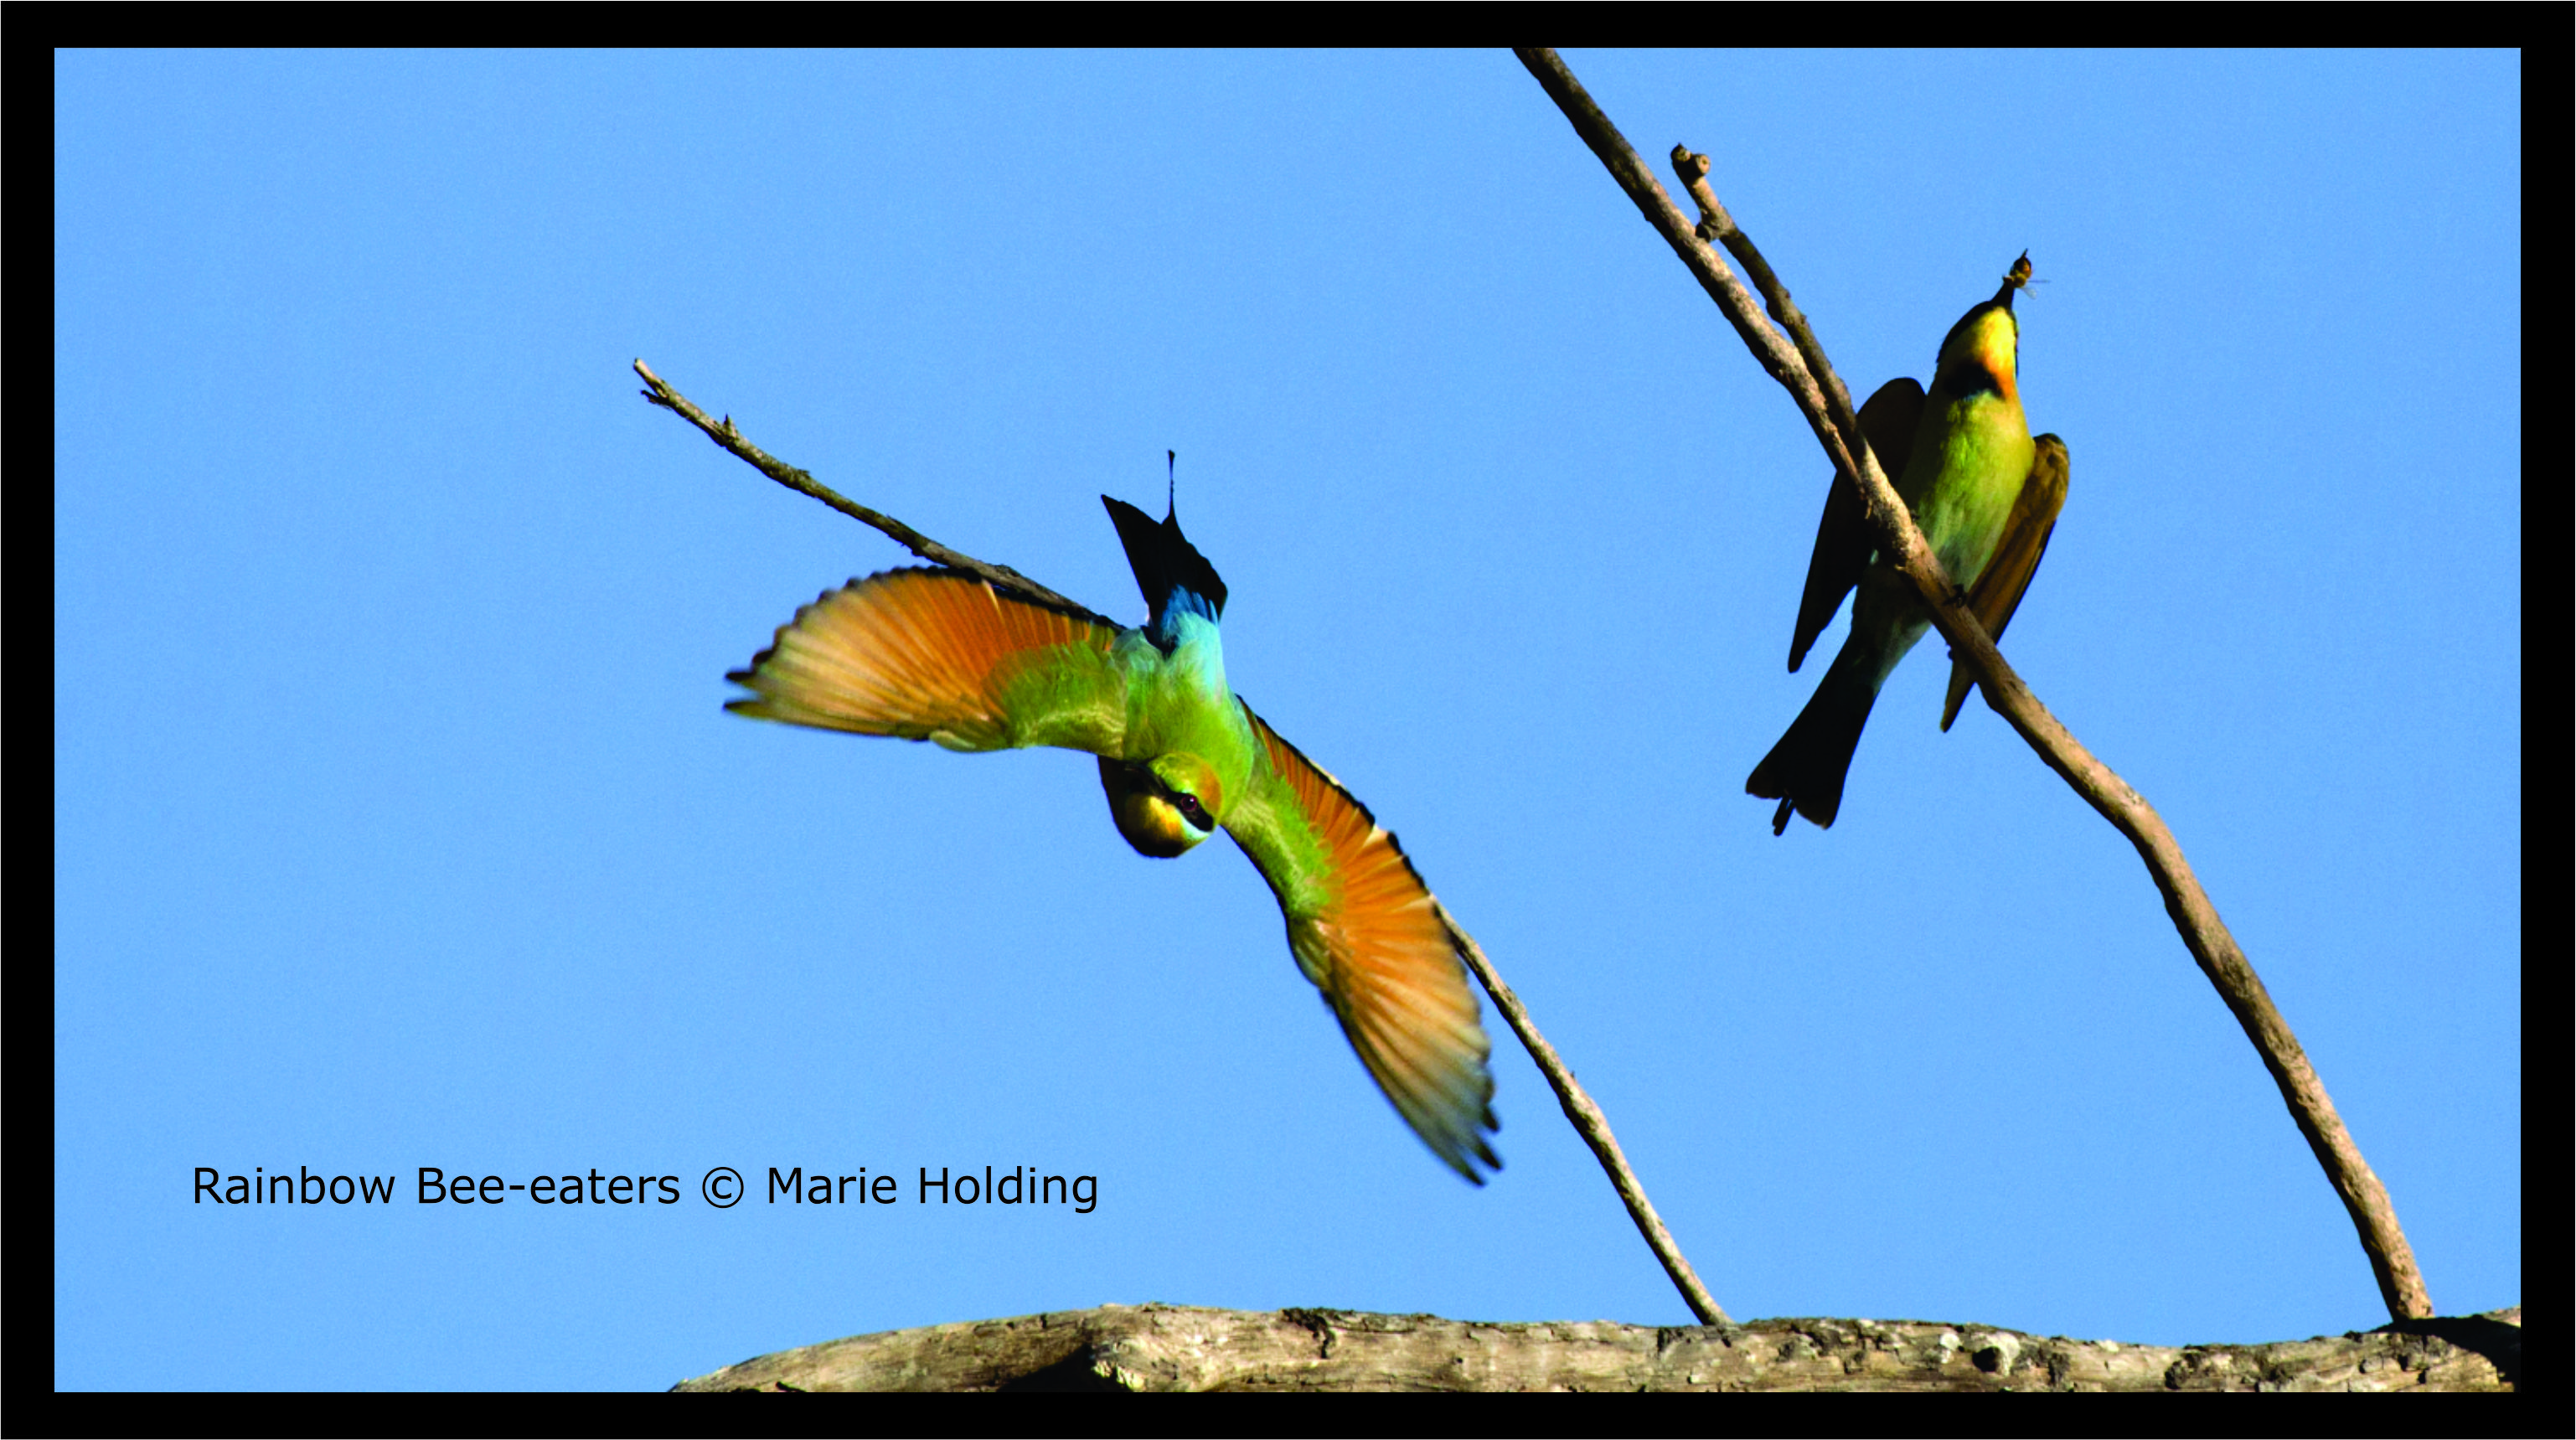 Rainbow Bee-eaters © Marie Holding